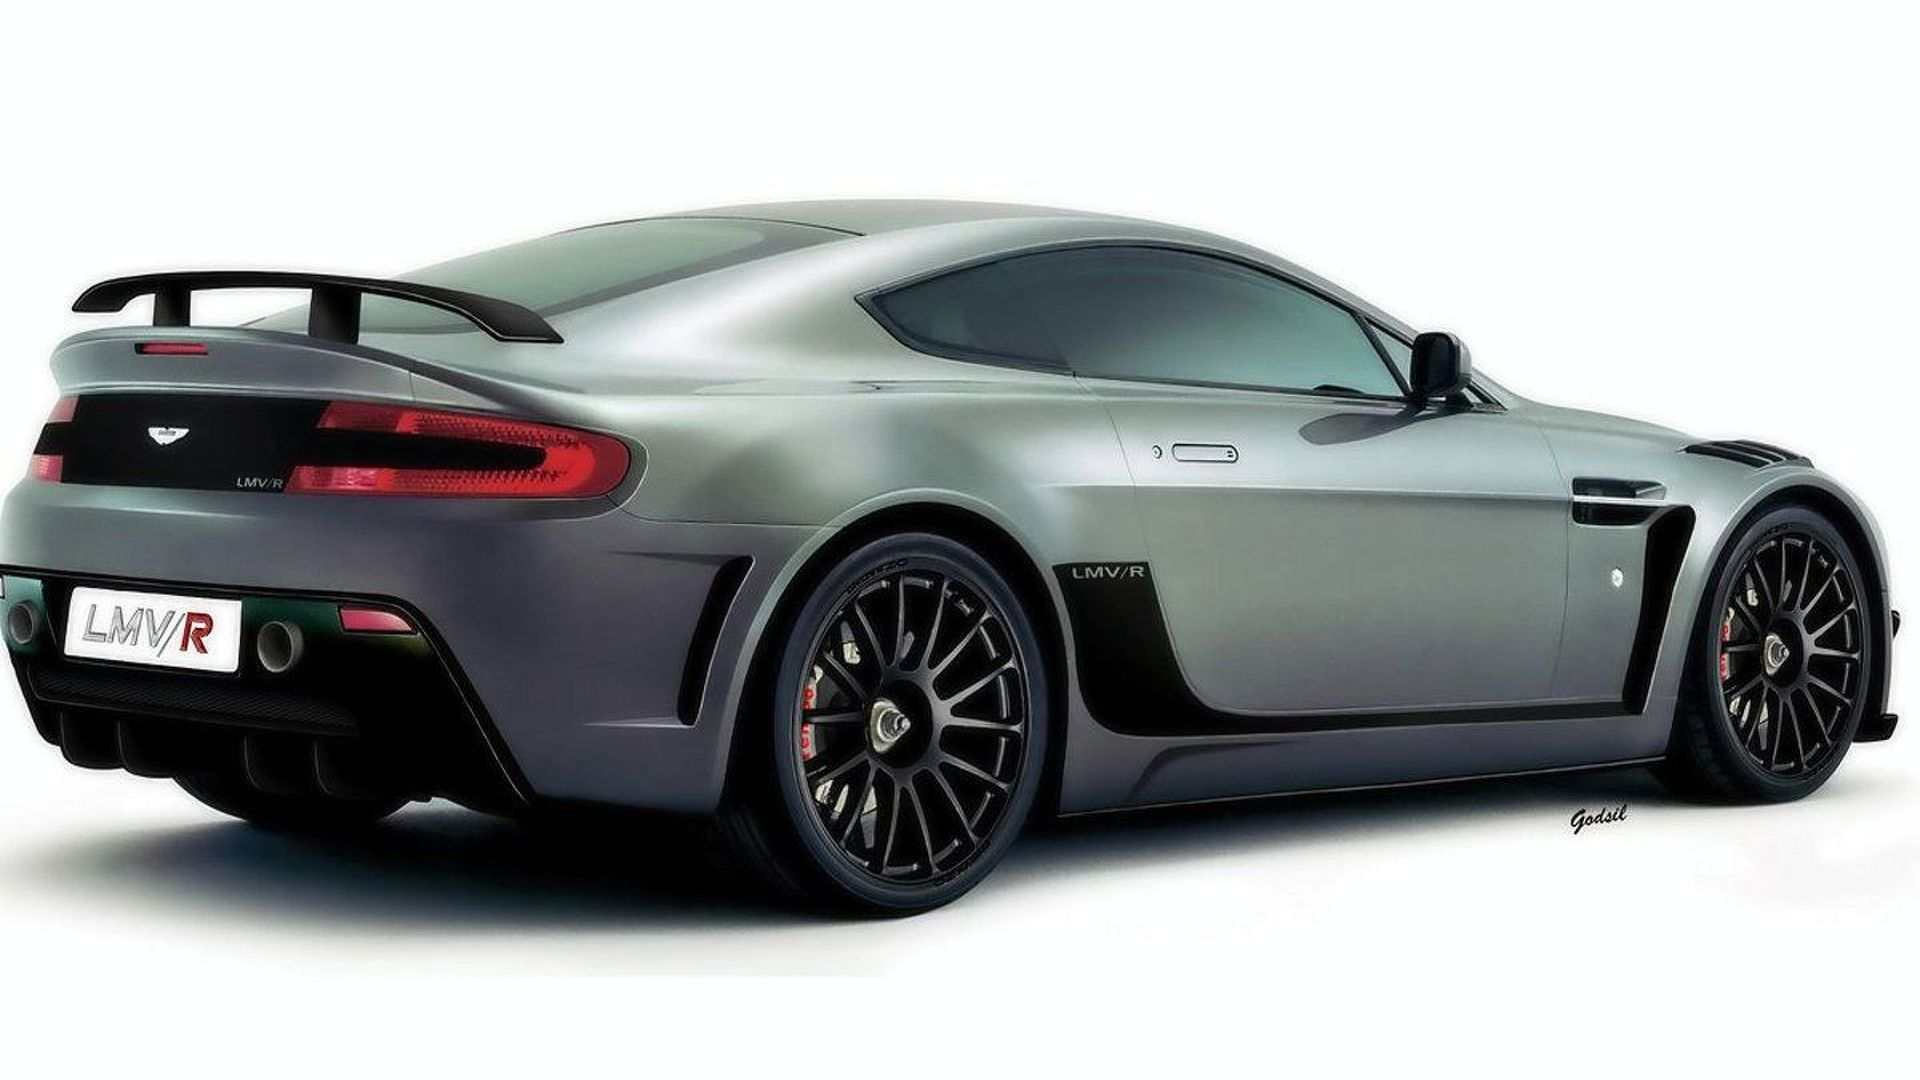 Elite LMV/R based on 2010 Aston Martin Vantage